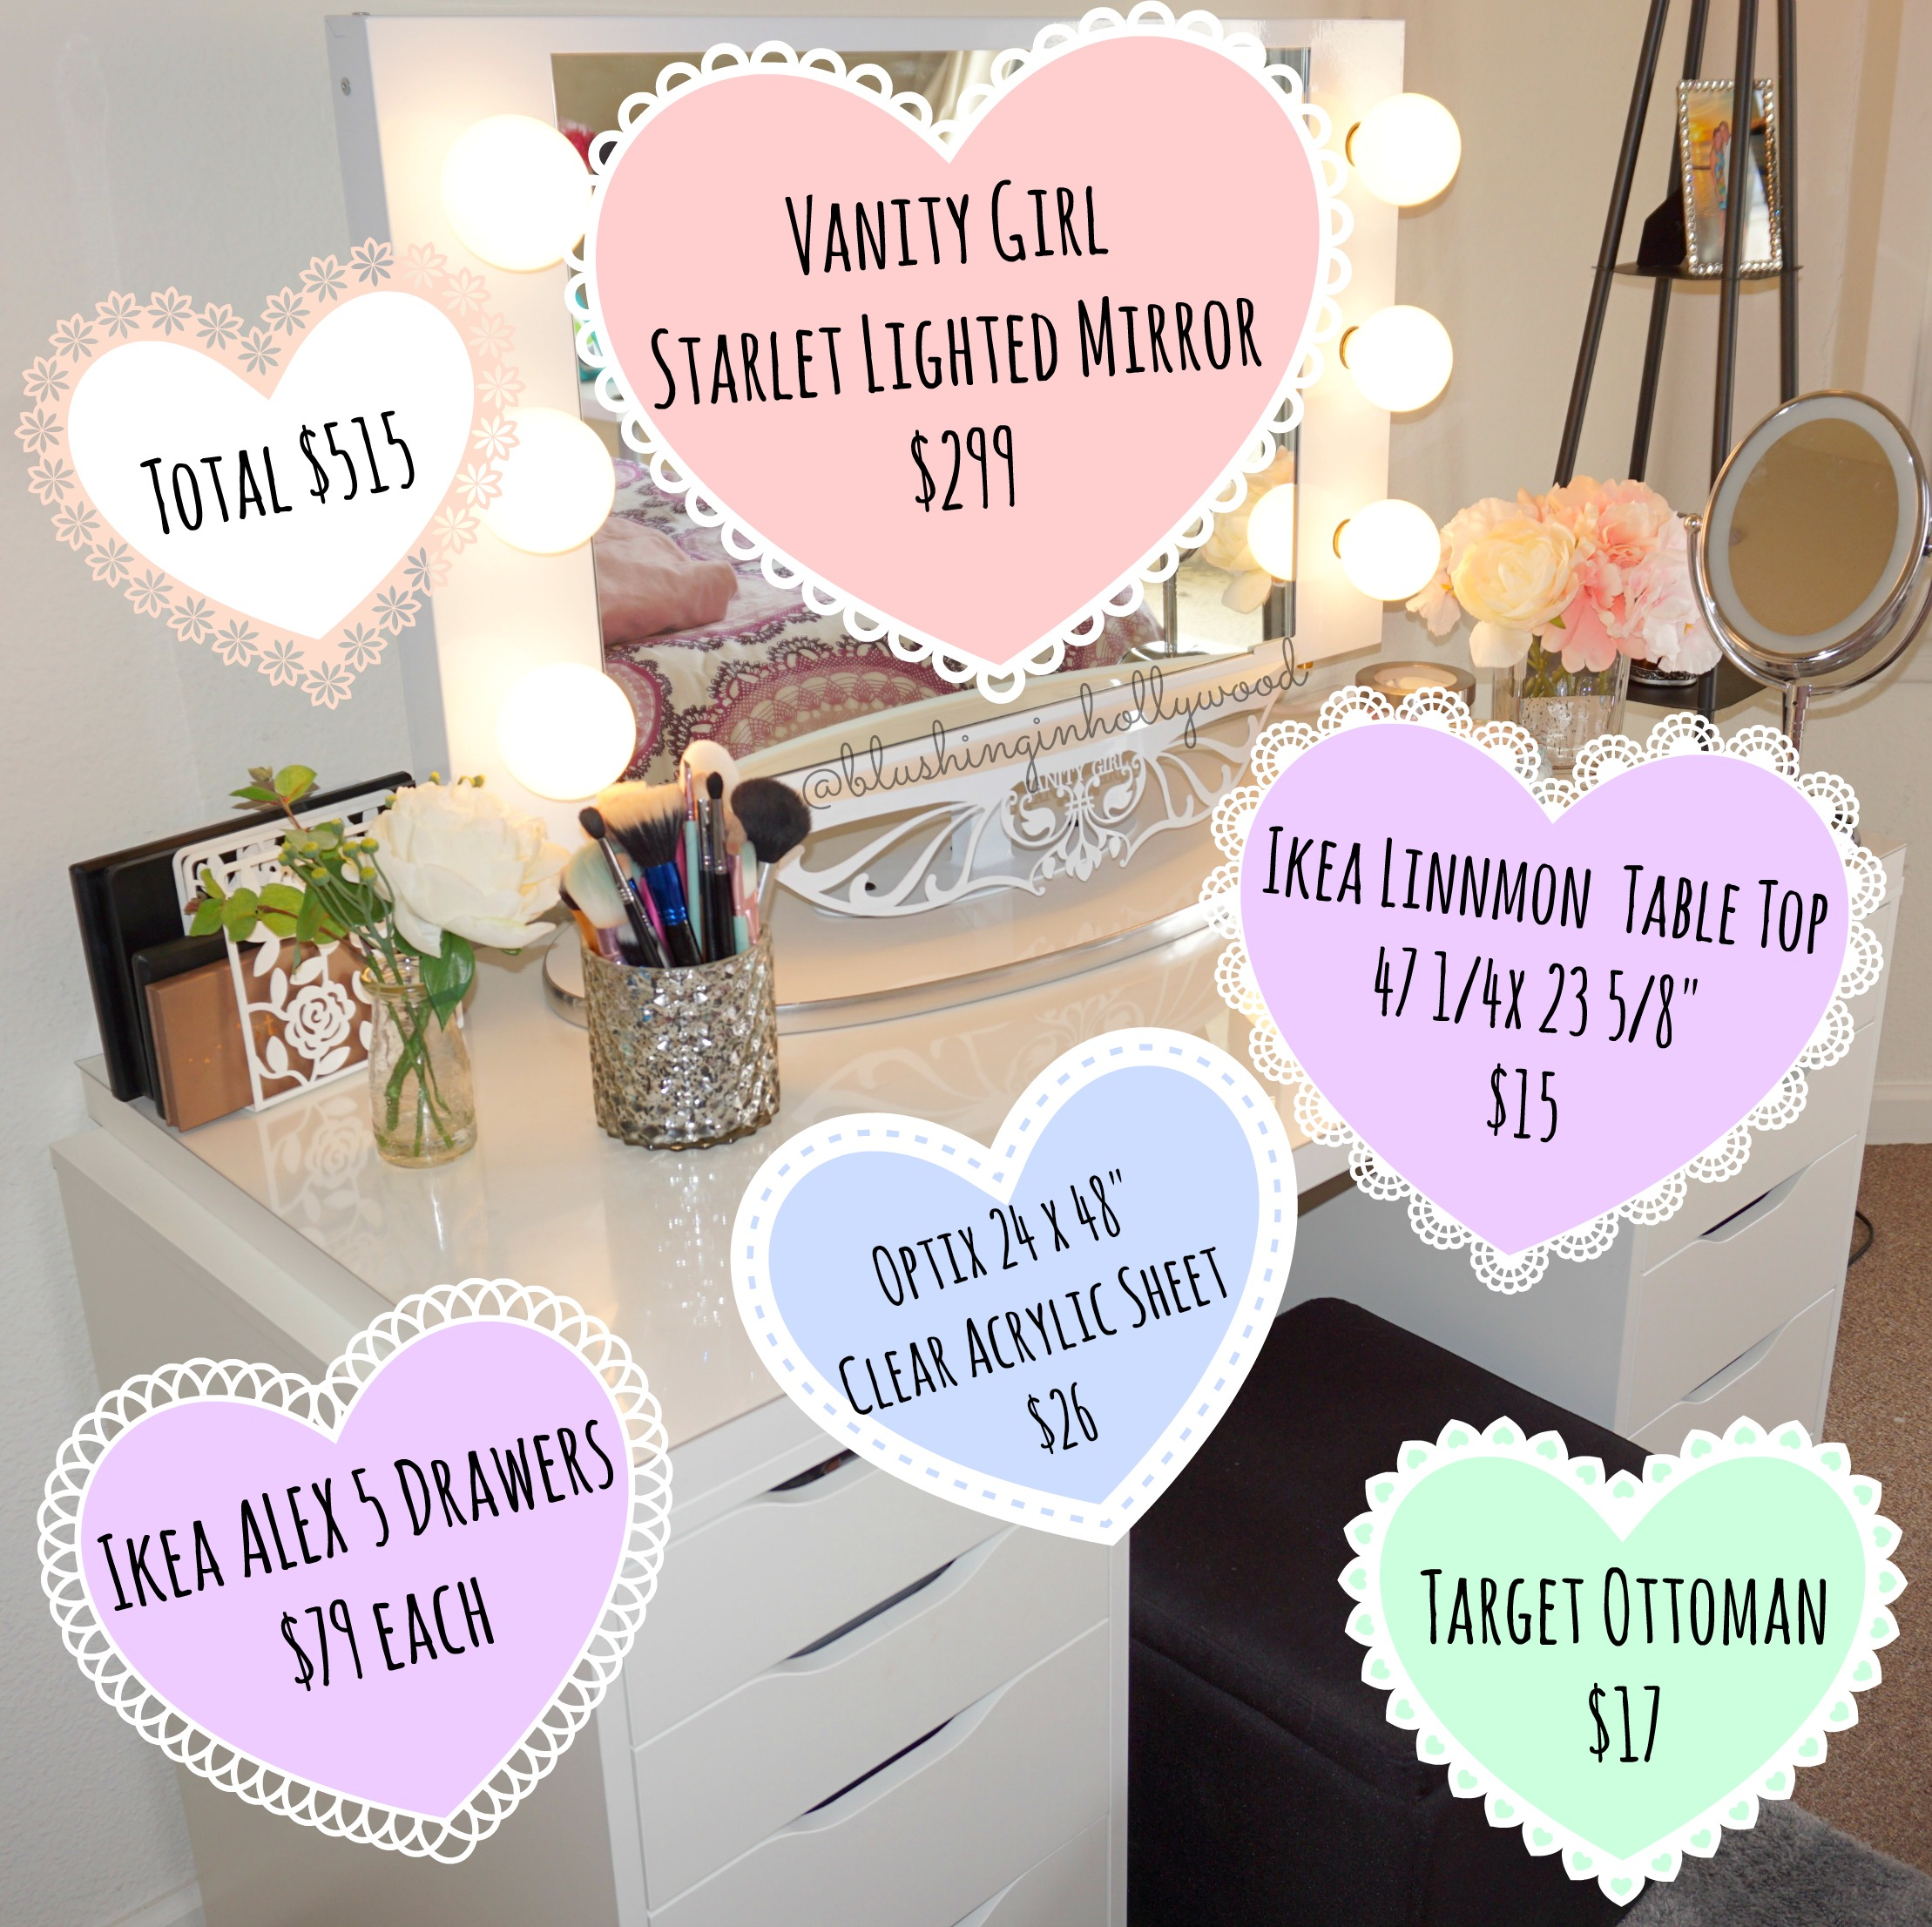 IKEA Alex Vanity Using A Vanity Girl Hollywood Starlet Lighted Mirror, Two  IKEA Alex 5 Drawers, IKEA Linnmon Table Top, Clear Acrylic Sheet To Protect  The ...